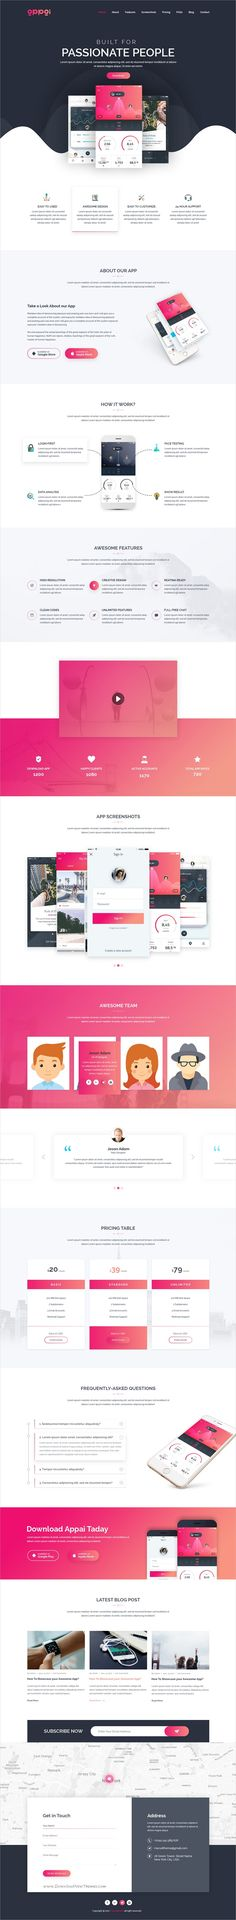 APPAI is a powerful #PSD template for #App Landing page #websites with 3 homepage layouts and 10 organized PSD pages download now➩ https://themeforest.net/item/appai-responsive-app-landing-psd-template/19357963?ref=Datasata